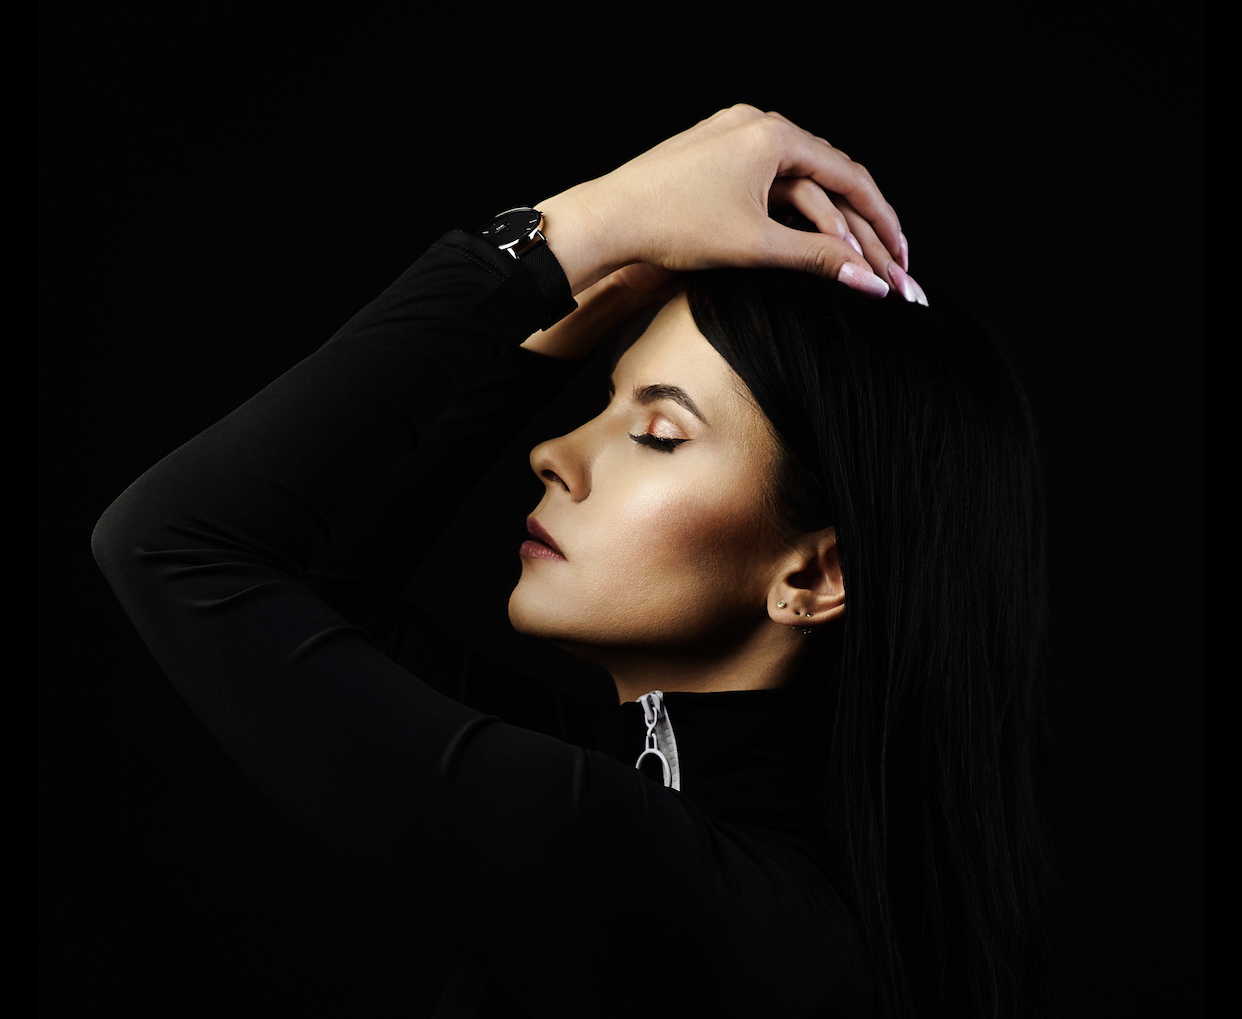 Noemi Black Debuts on Substeal Records with Emphatic Remix of Alberto Ruiz  – Music is 4 Lovers